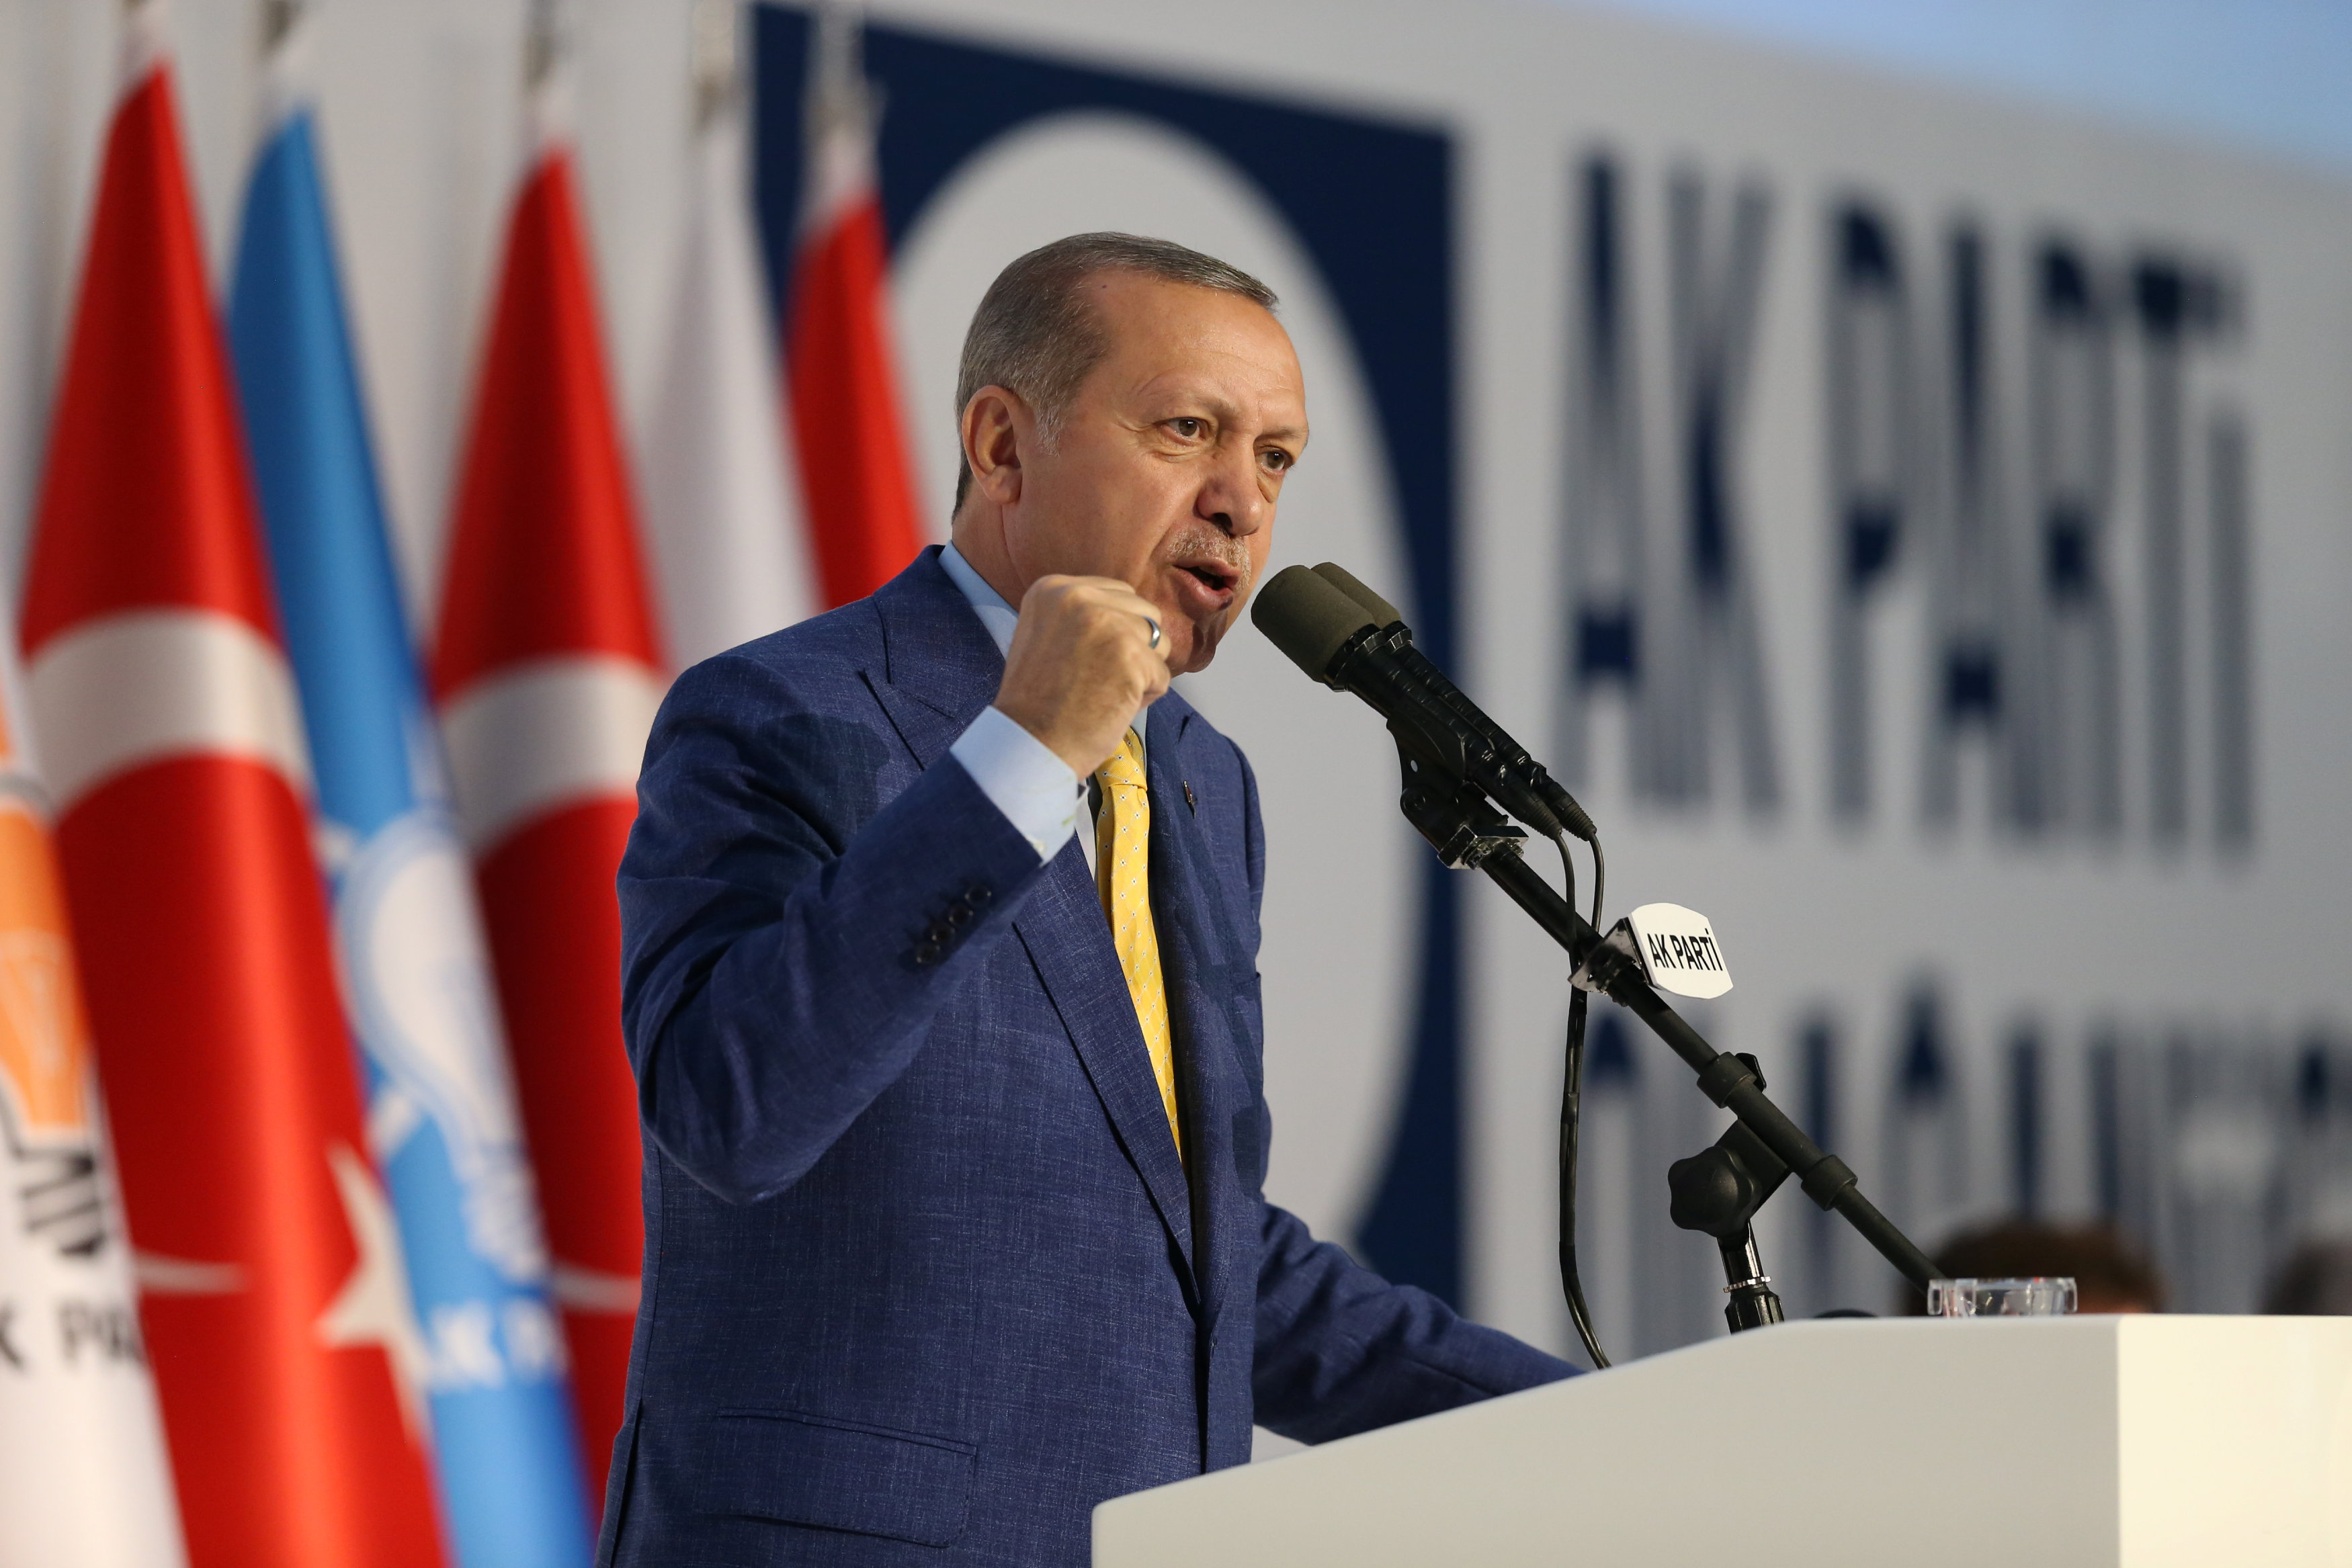 FILE PHOTO: Turkish President Tayyip Erdogan makes a speech during the Extraordinary Congress of the ruling AK Party (AKP) in Ankara, Turkey May 21, 2017. Murat Cetinmuhurdar/Presidential Palace/Handout via REUTERS